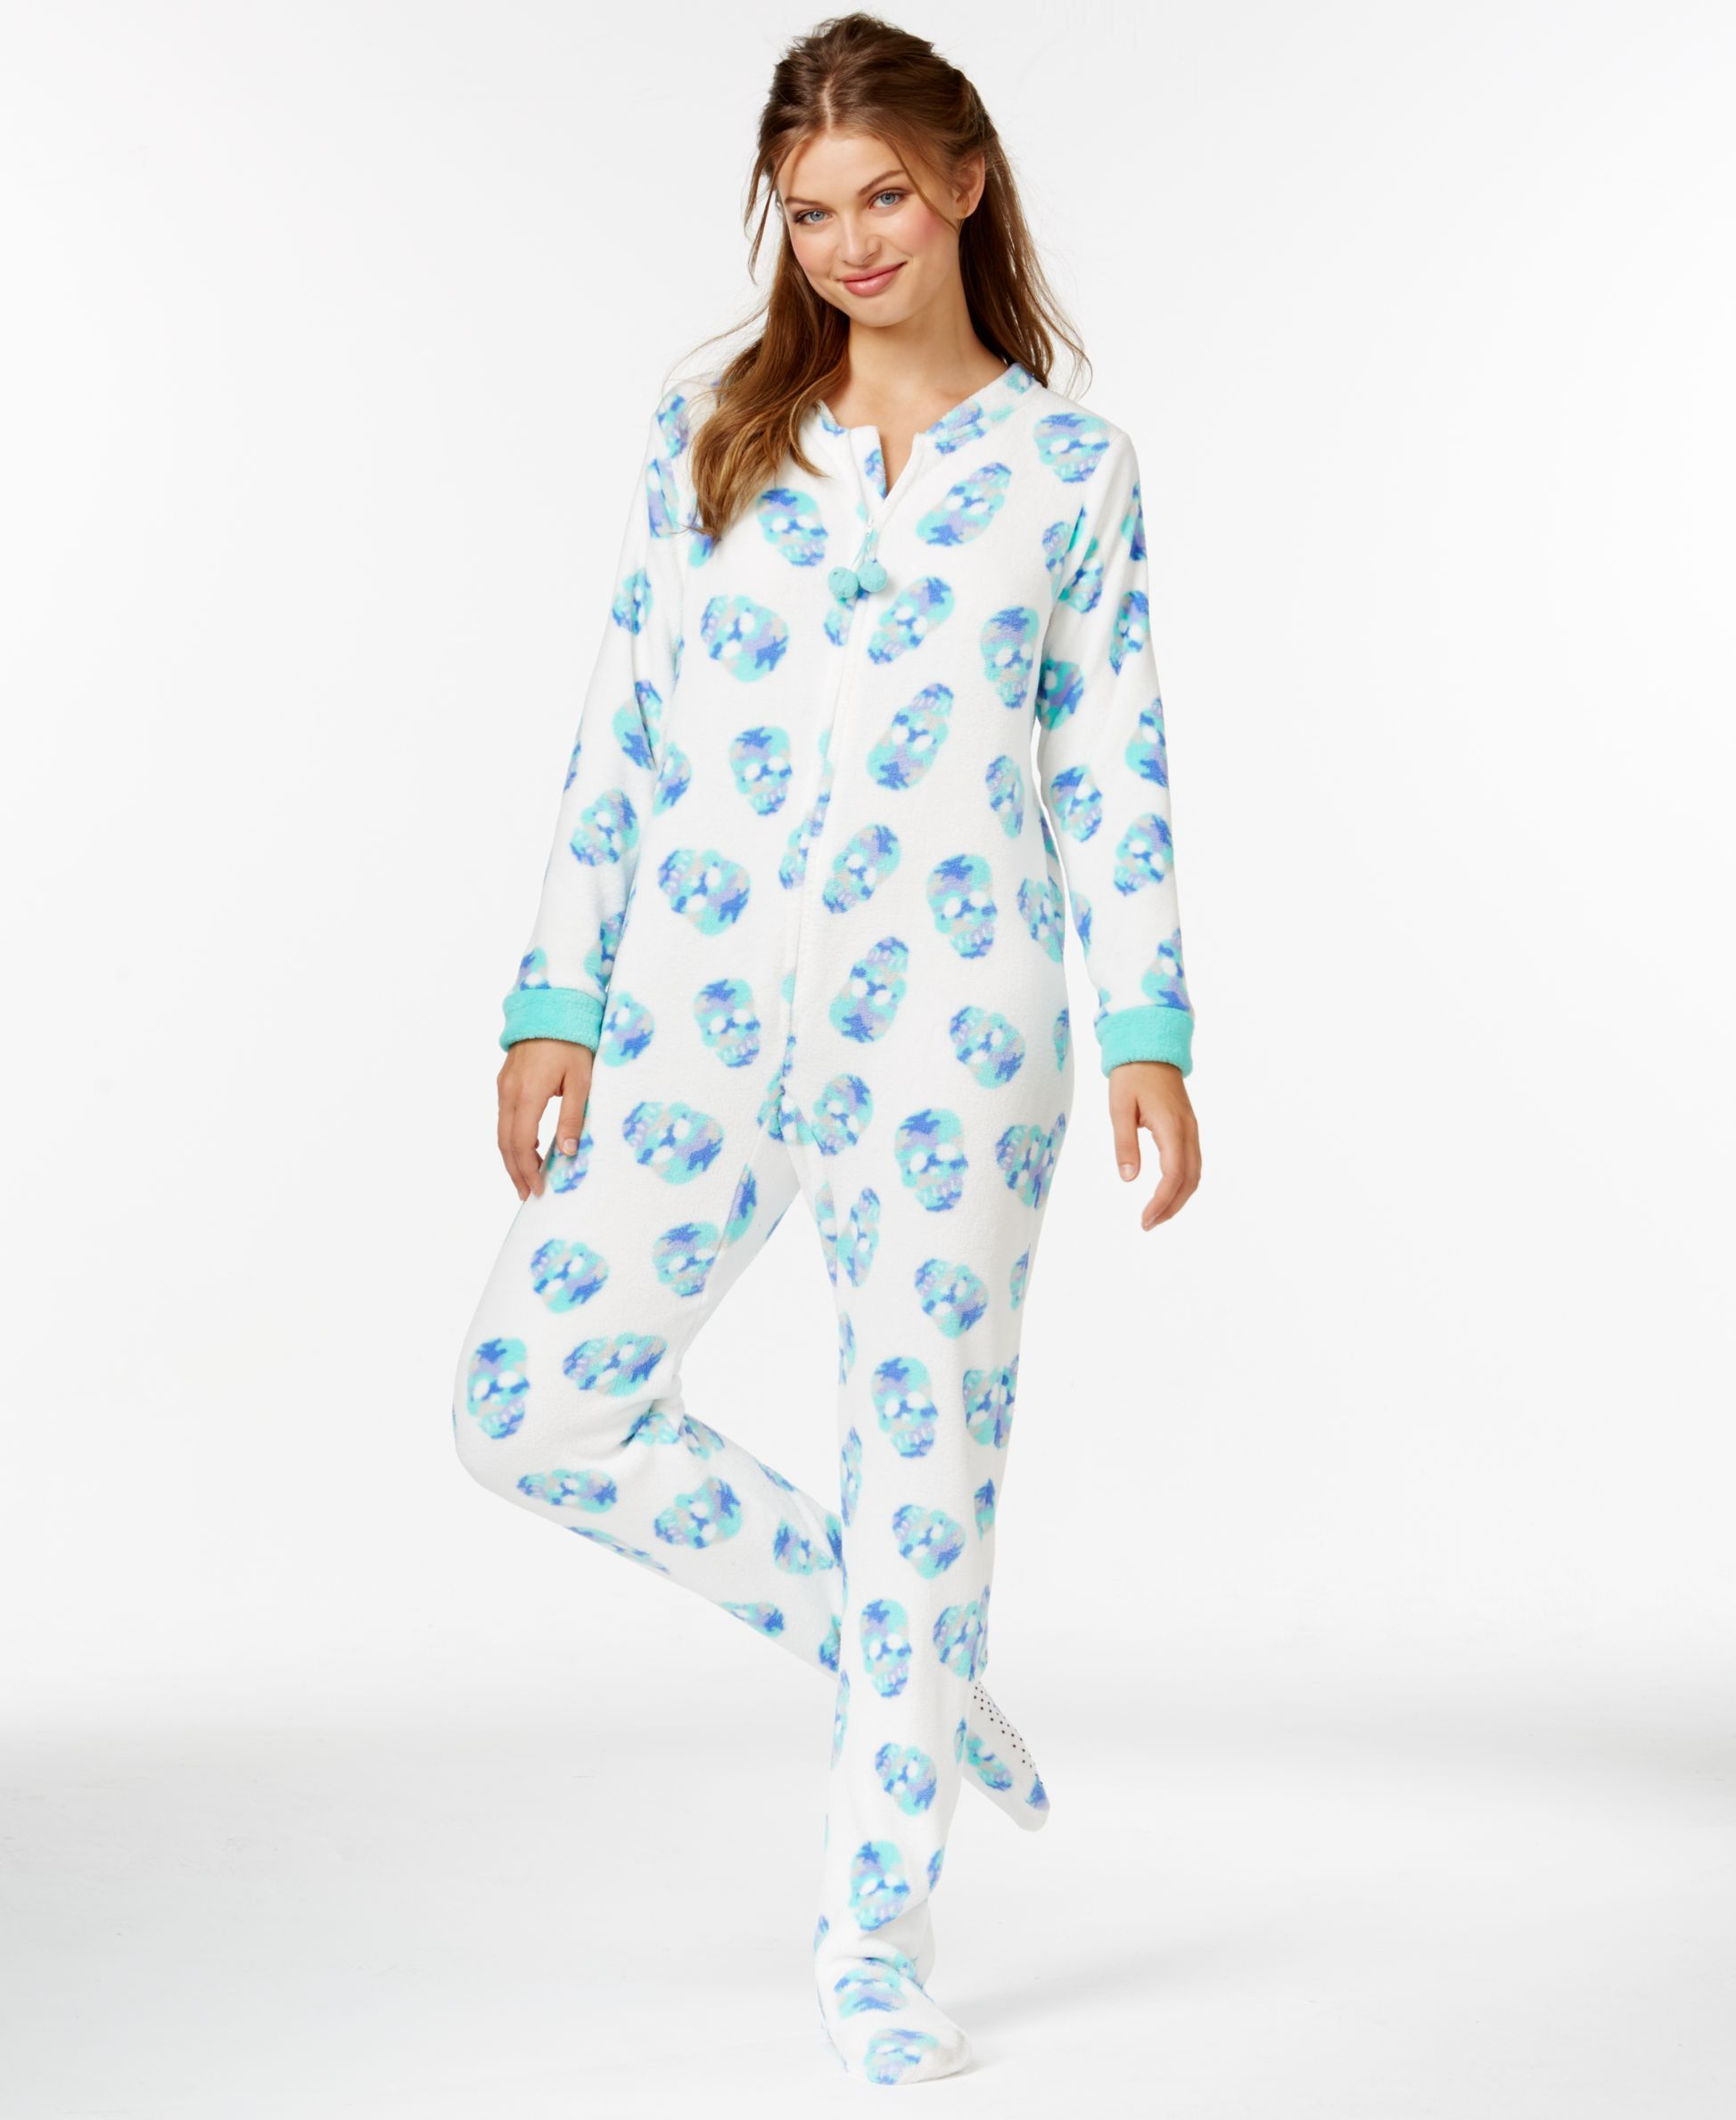 Plus Size Footie Pajamas For Adults